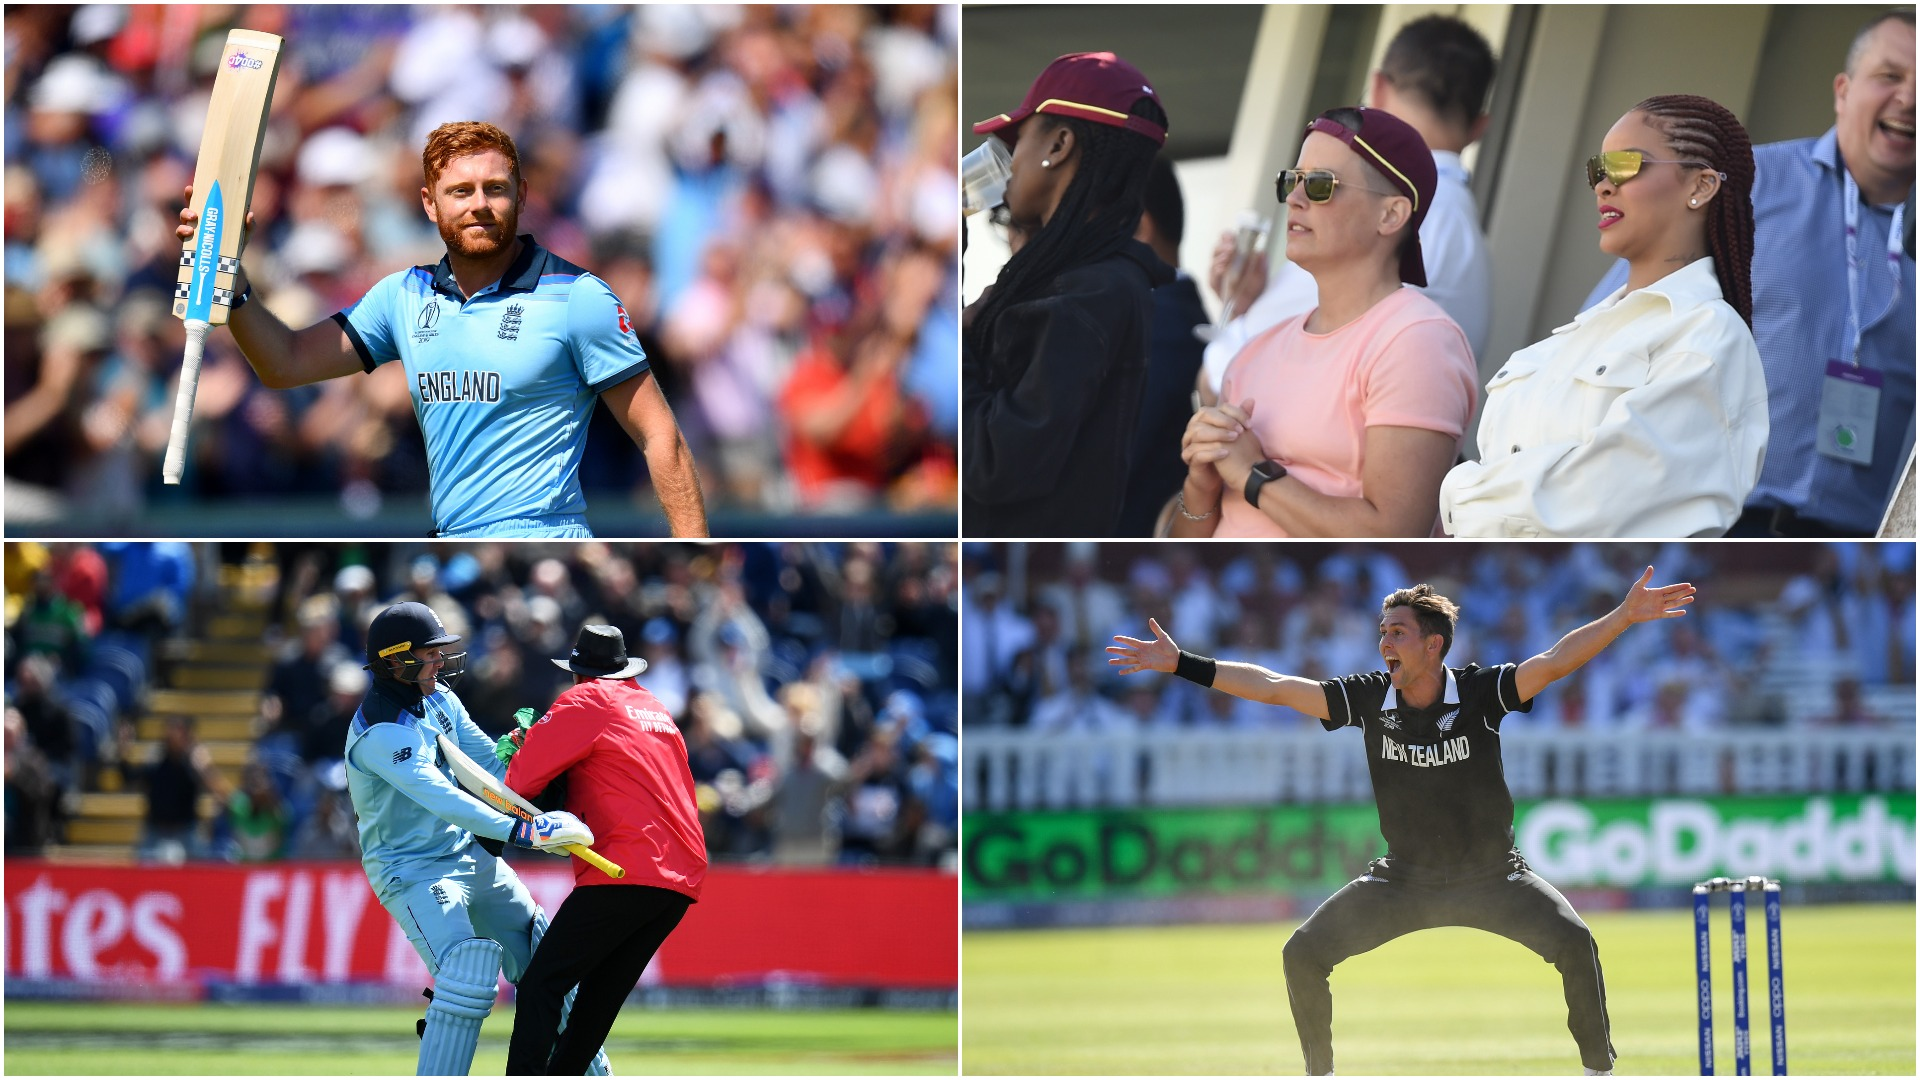 Rihanna, bees and a comedy collision - the best moments of the Cricket World Cup group stage